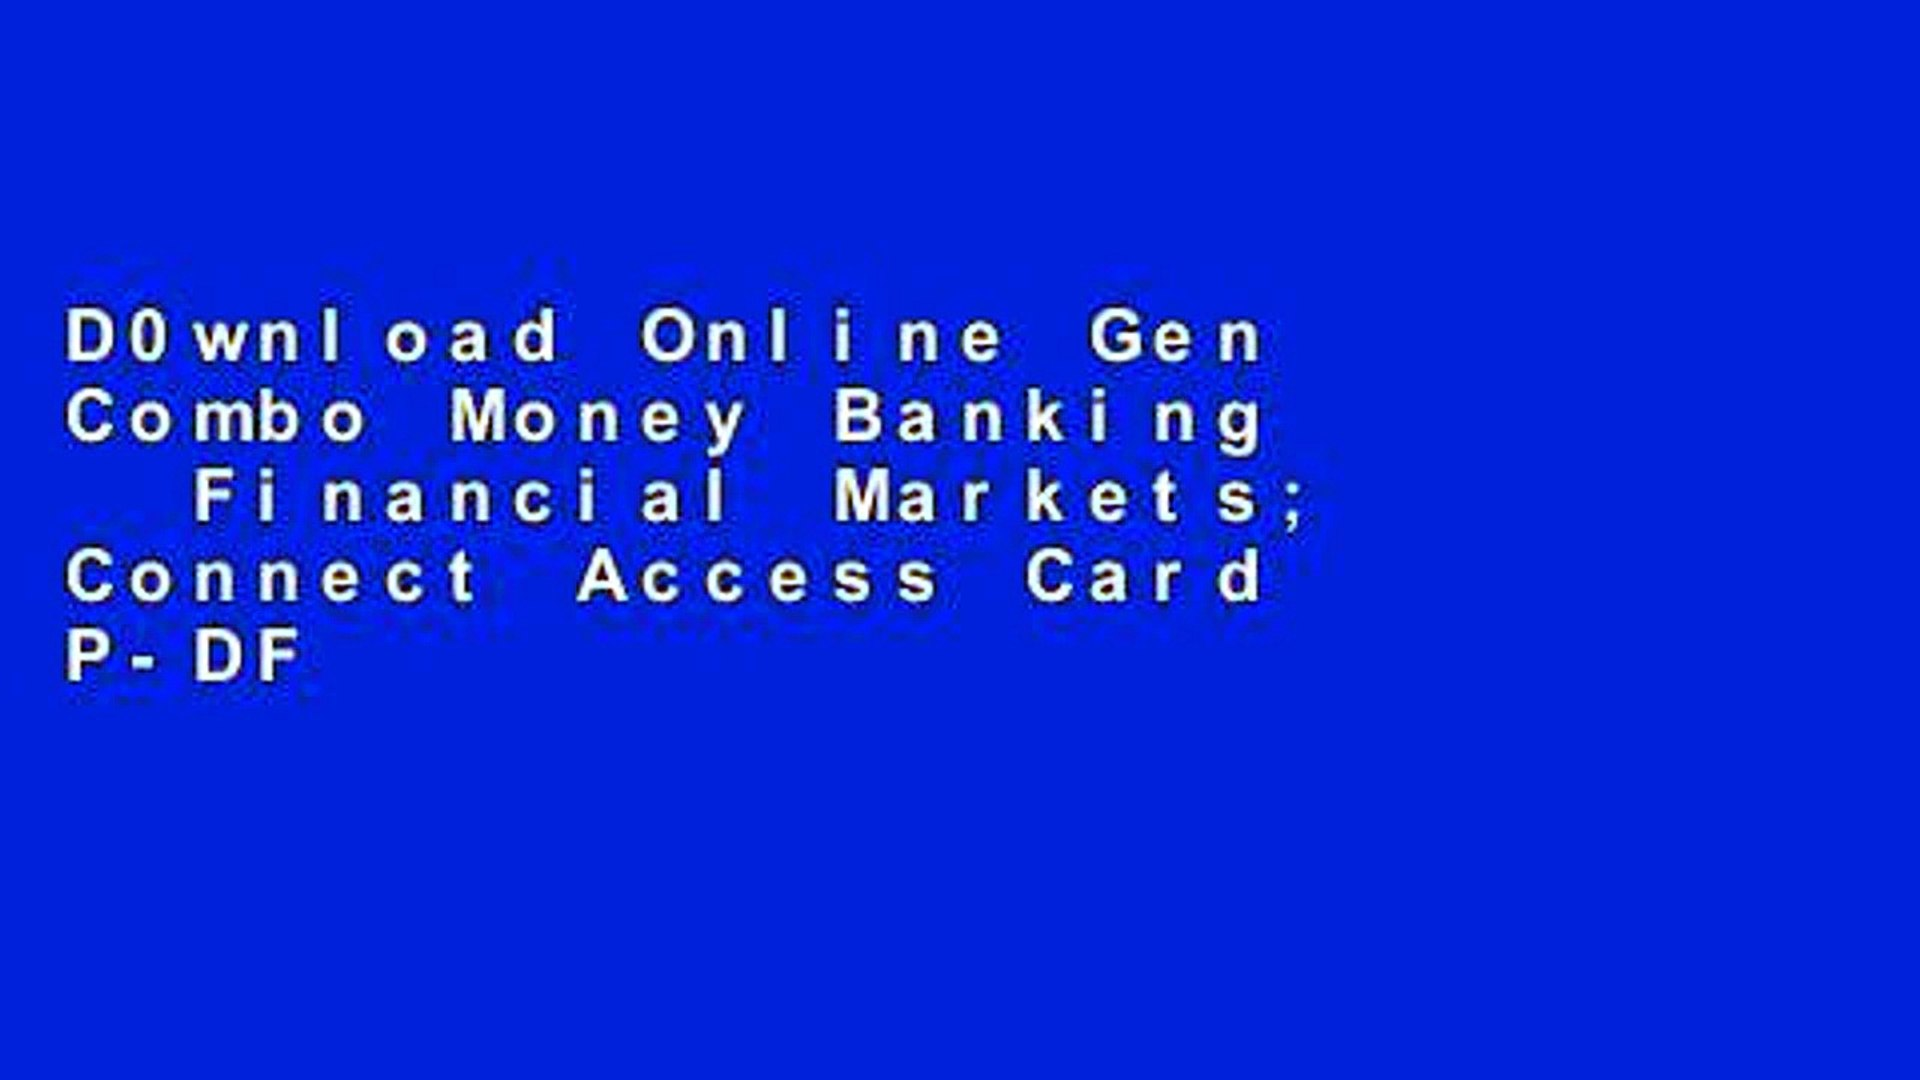 D0wnload Online Gen Combo Money Banking   Financial Markets; Connect Access Card P-DF Reading